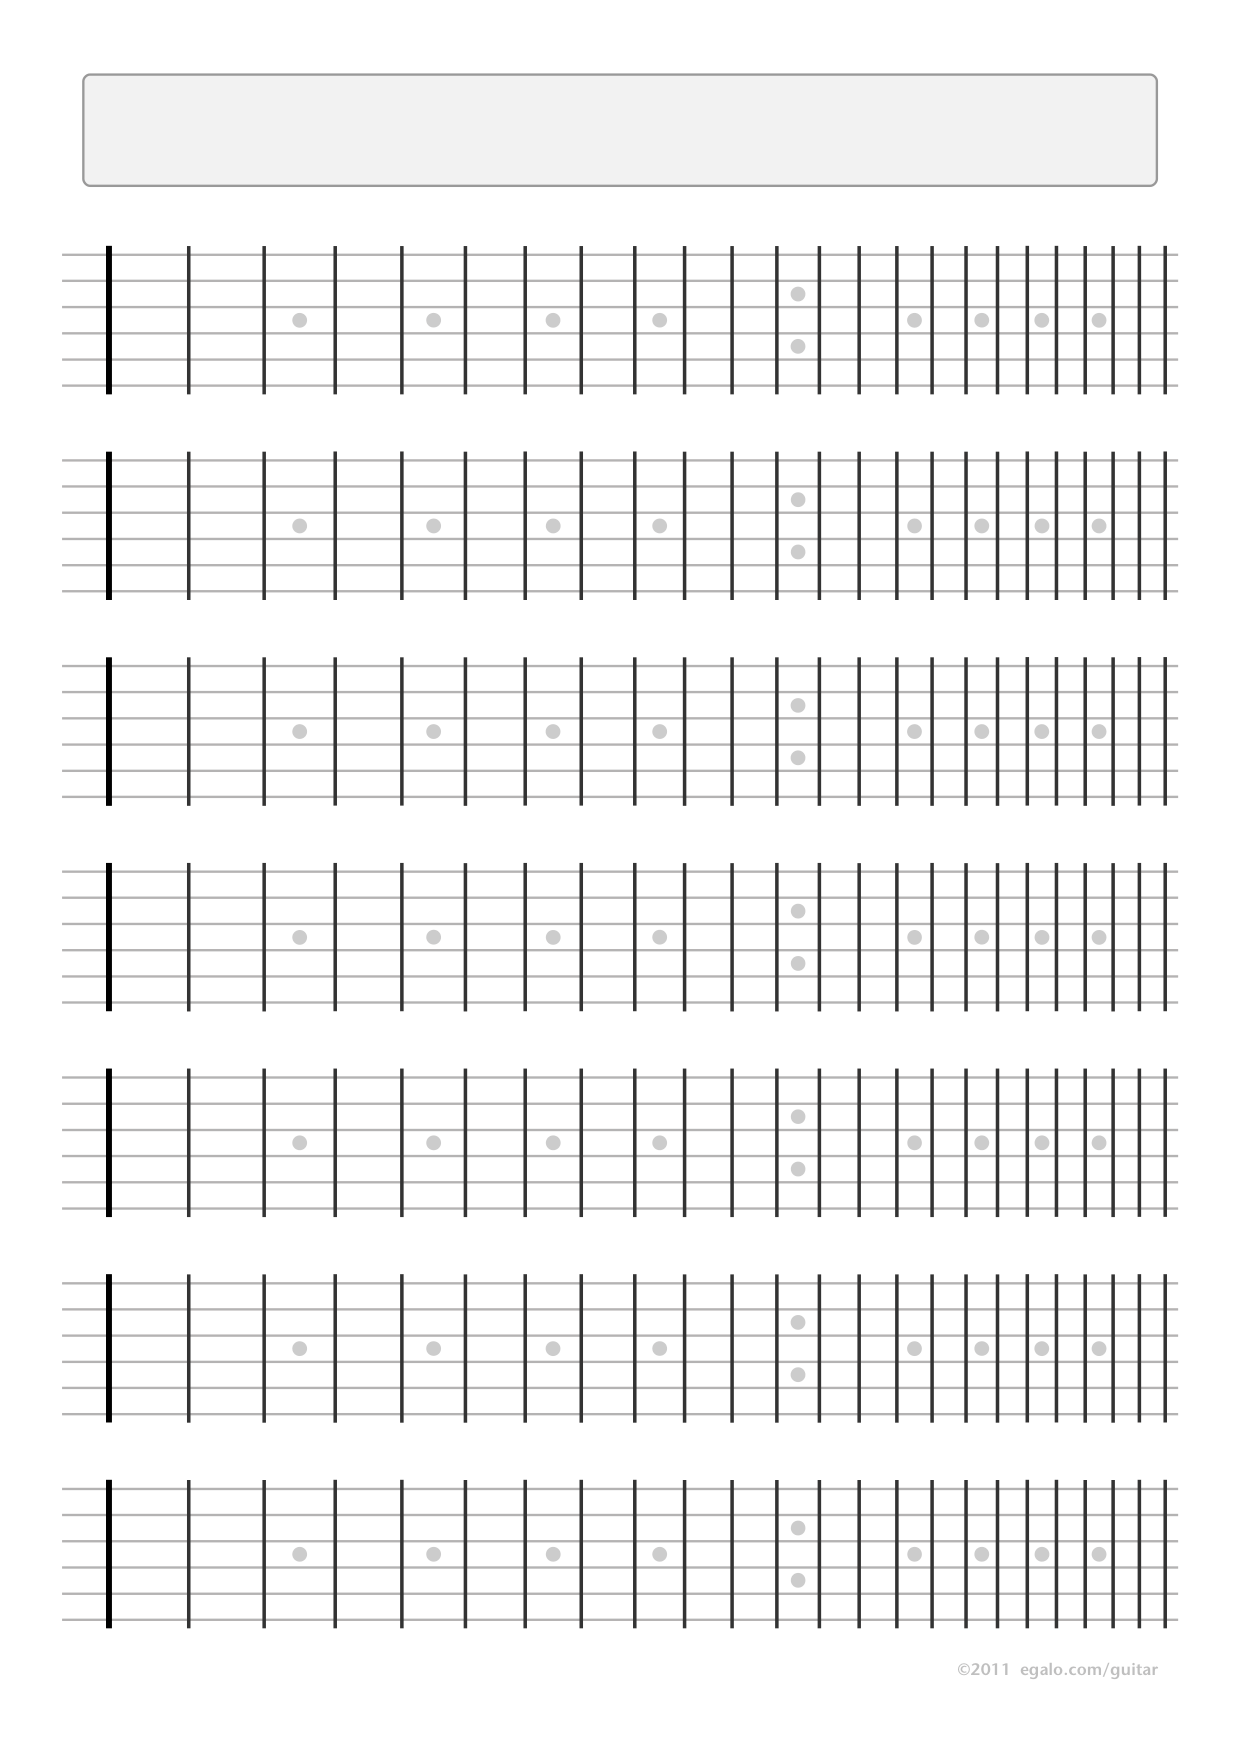 hight resolution of blank fretboard http www islandguitarstudios com stuff guitar blank fretboard charts 23 frets with inlays png